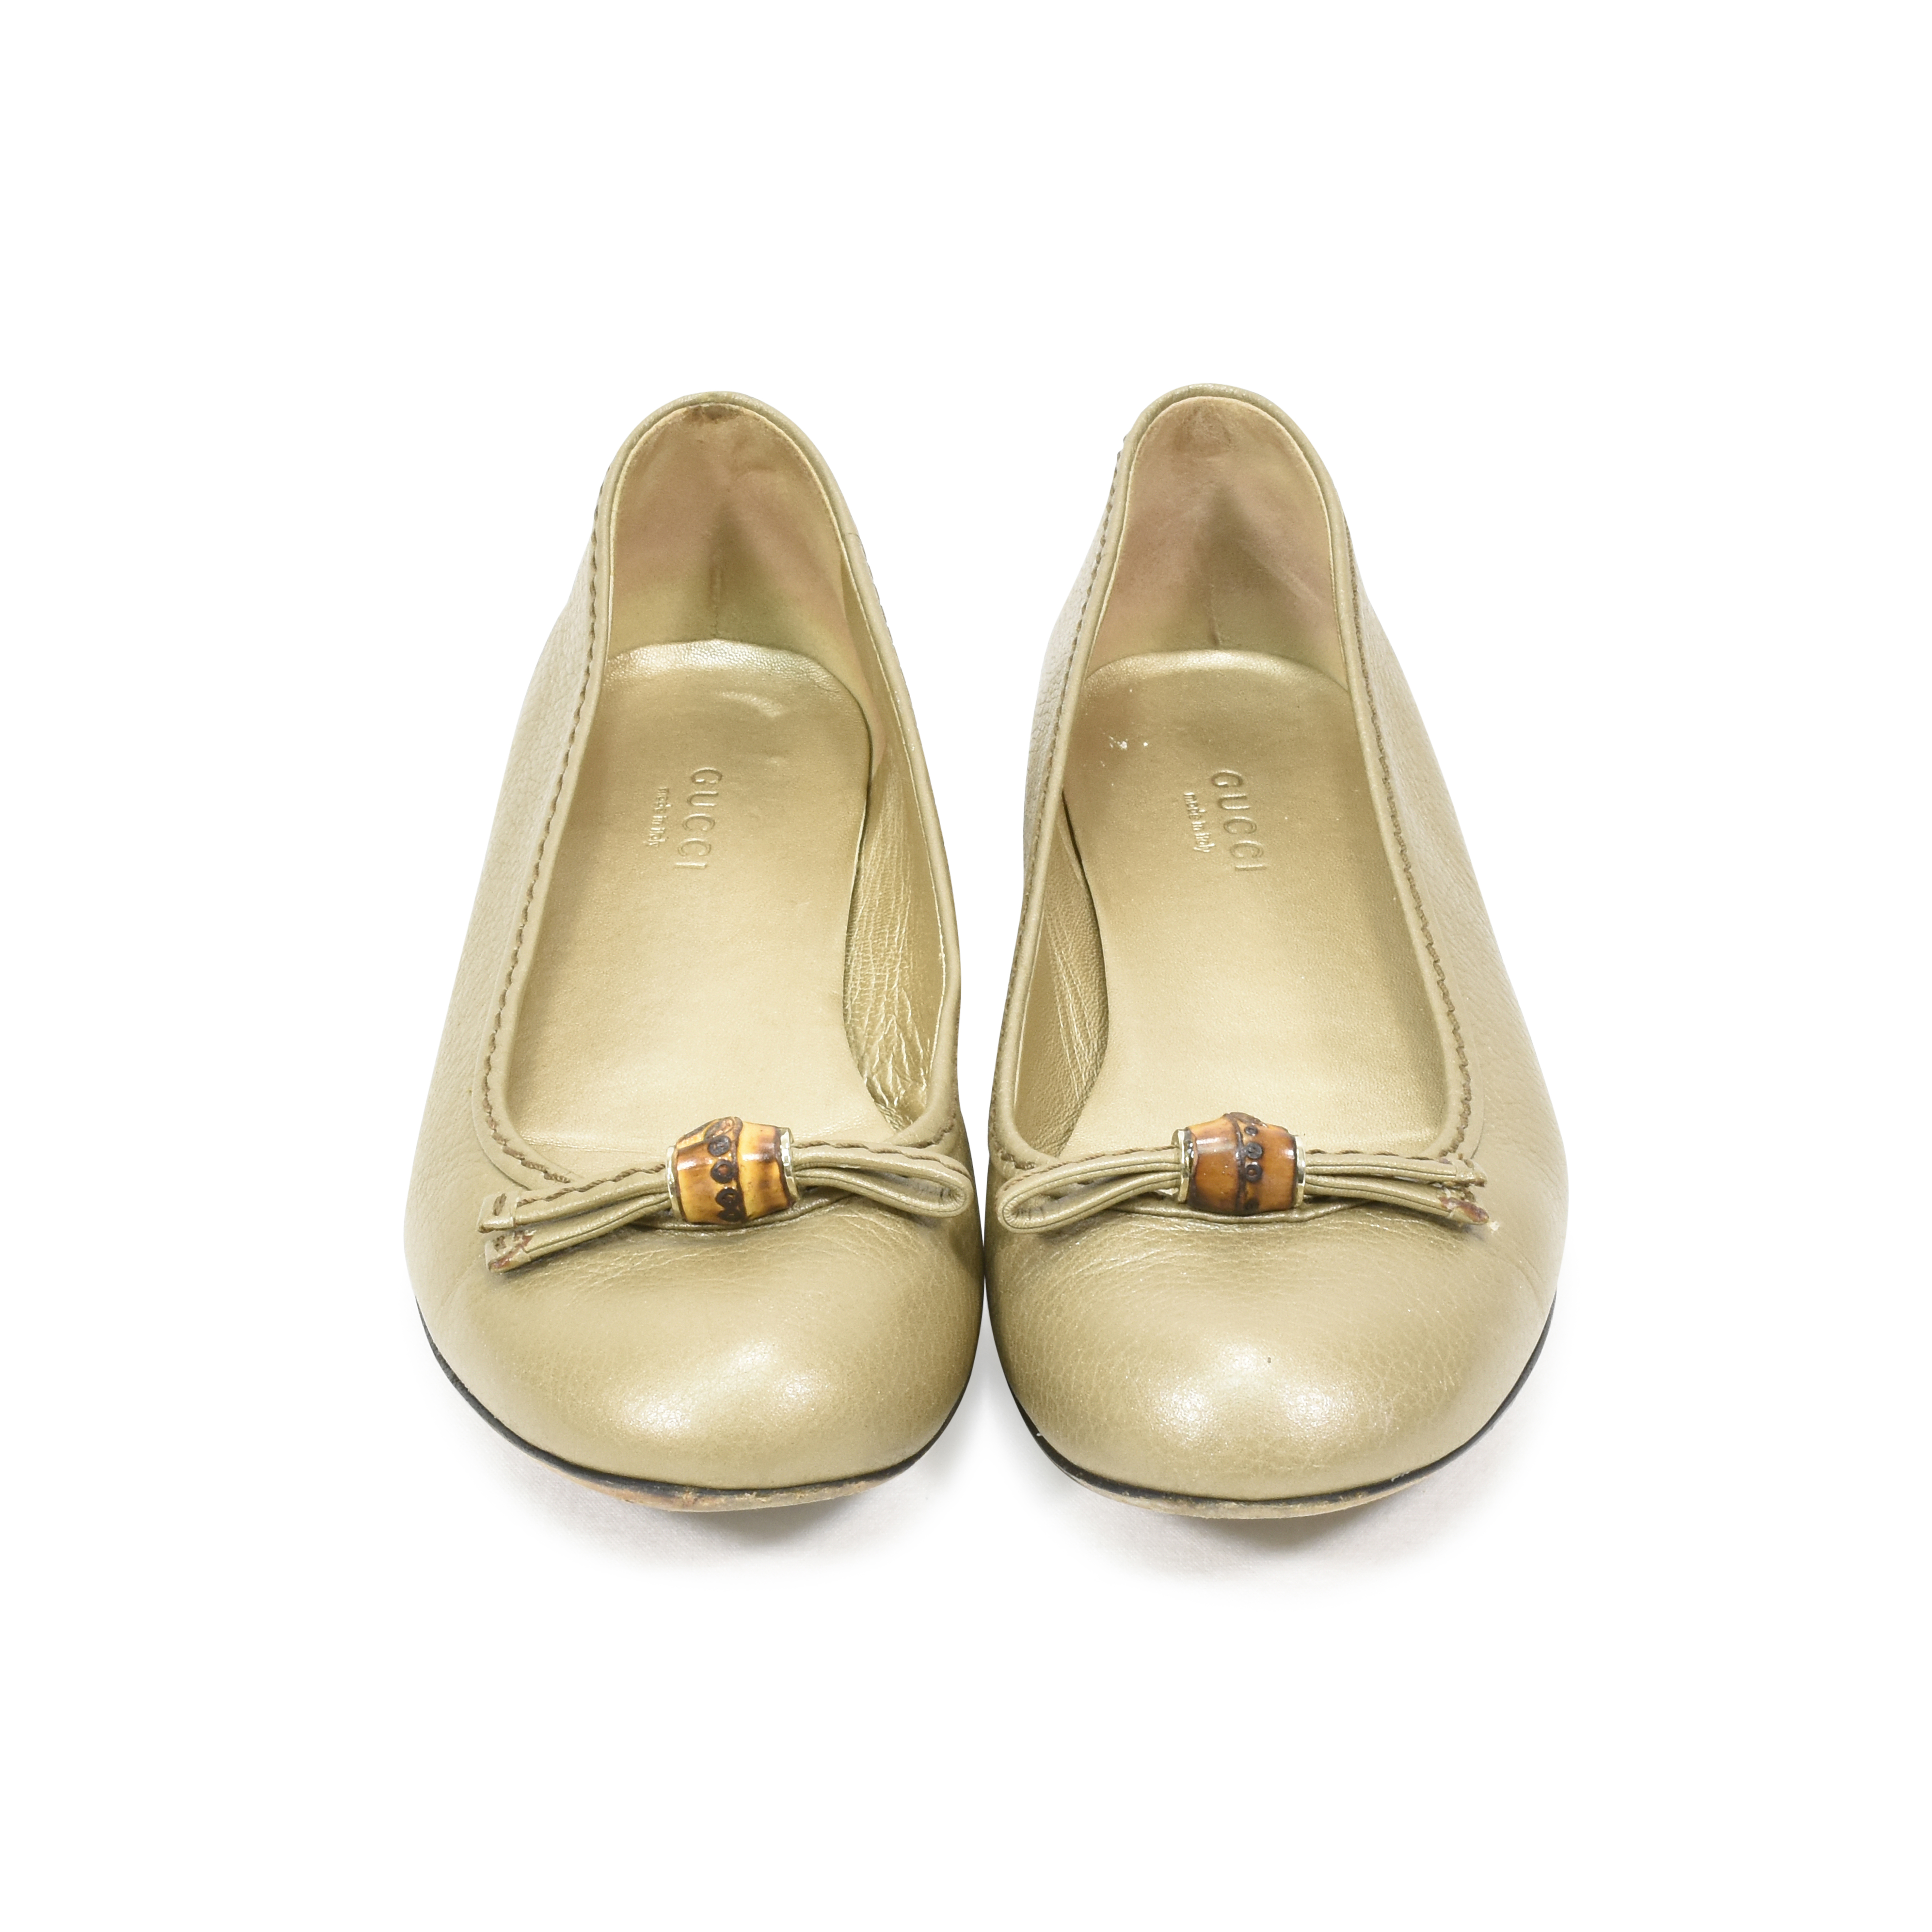 5d33ef17bb9 Authentic Second Hand Gucci Ballerina Flats (PSS-375-00004)